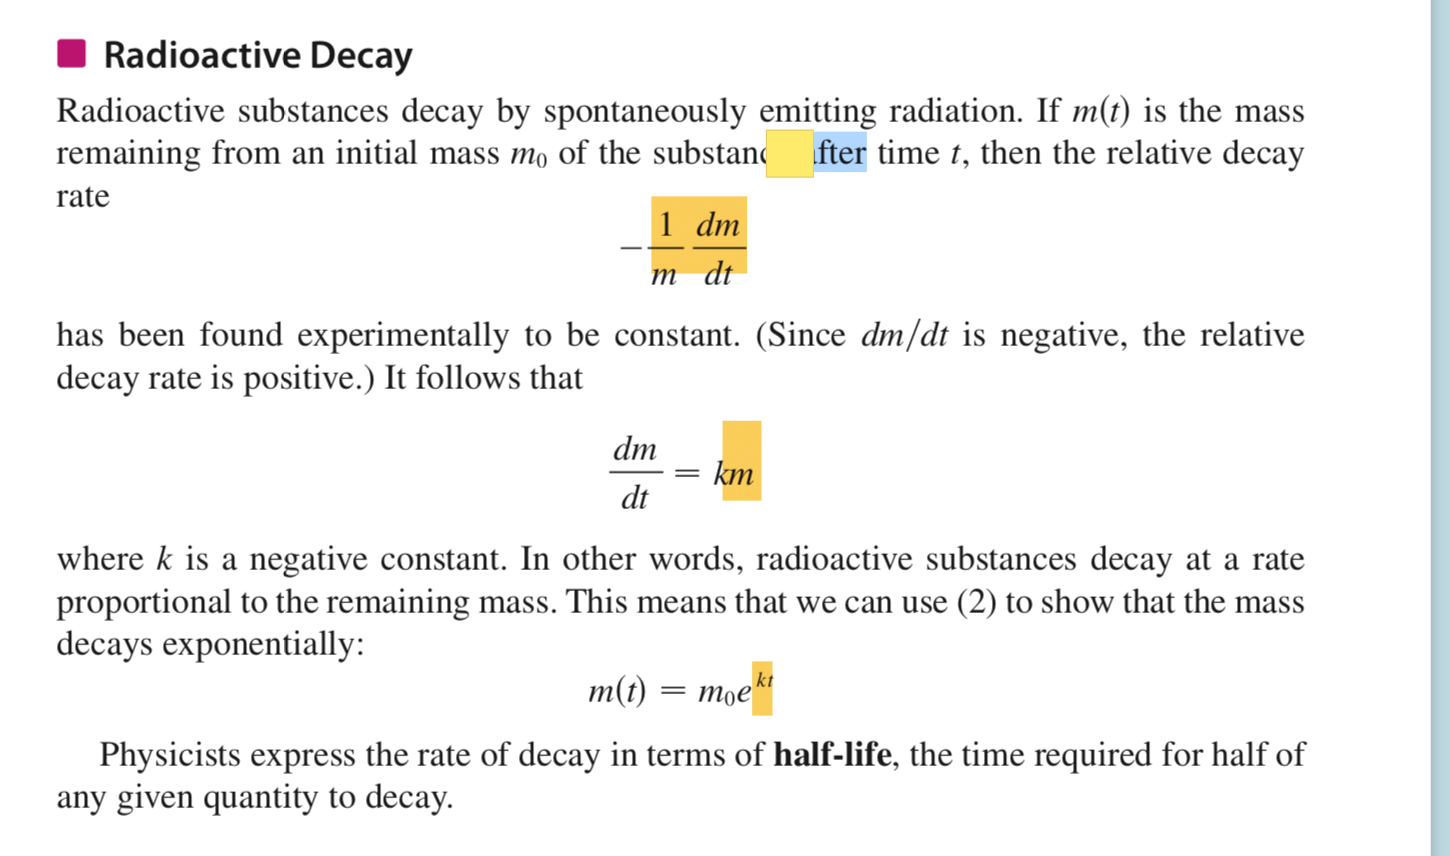 Exponential Equation For Radioactive Decay